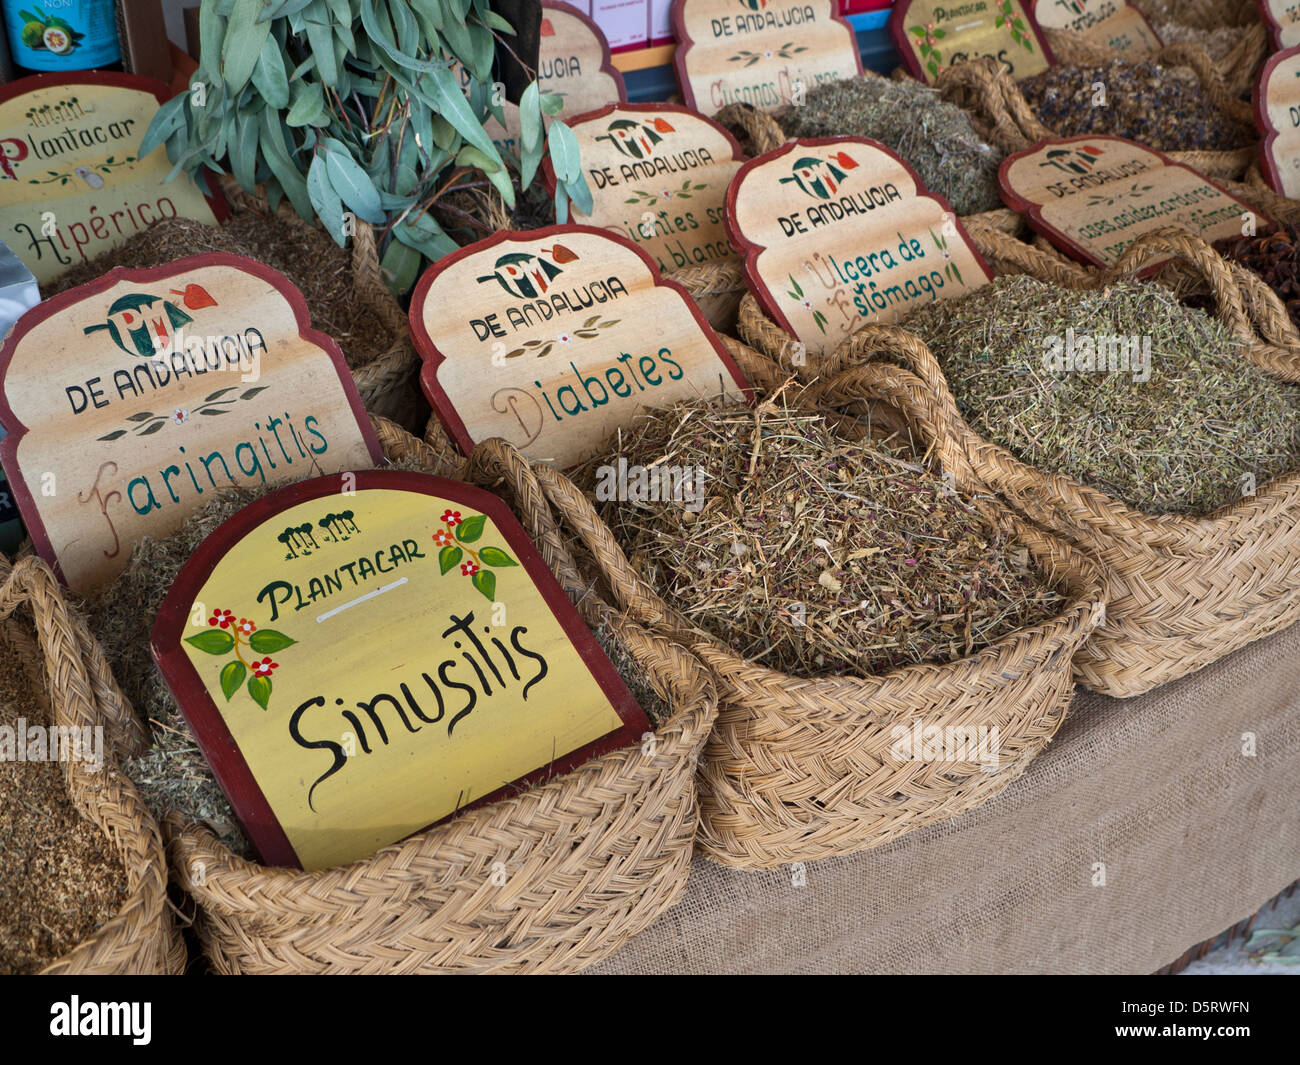 Variety of herbs and herbal remedies on display for sale Palma de Mallorca market stall  Spain - Stock Image